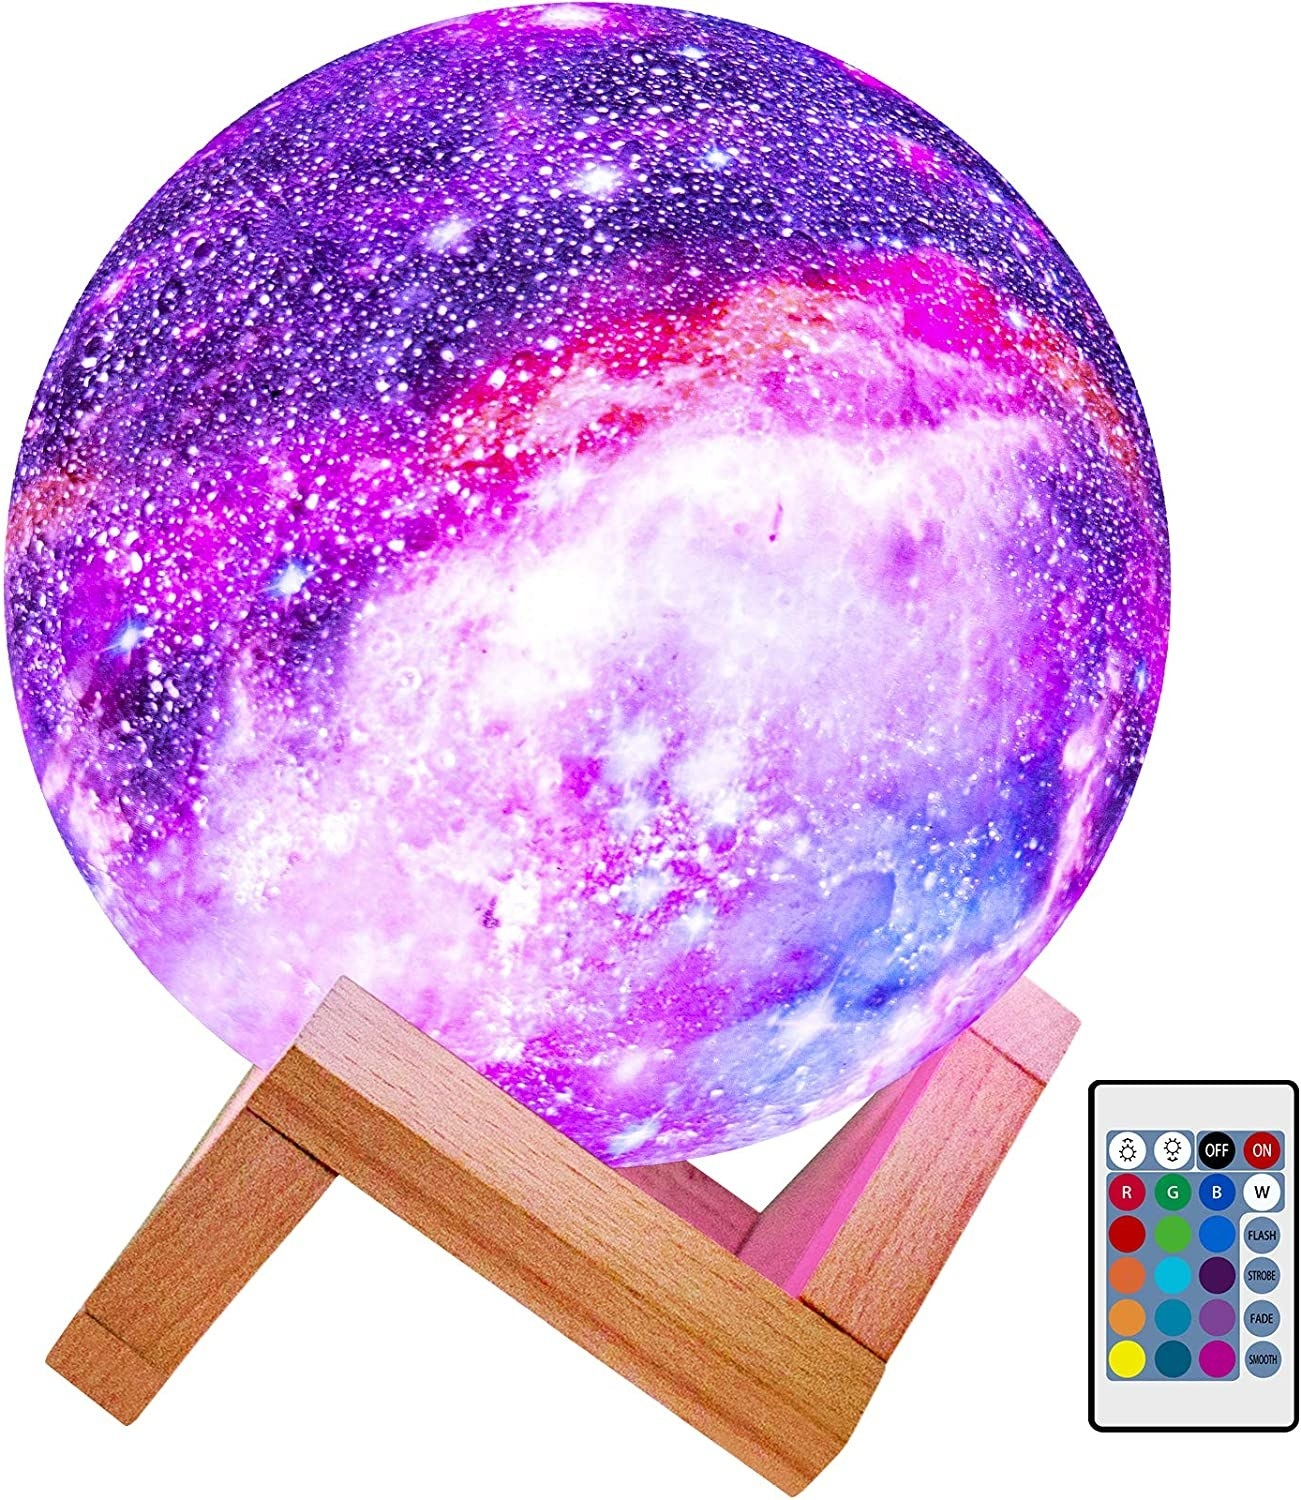 the multi-colored moon lamp